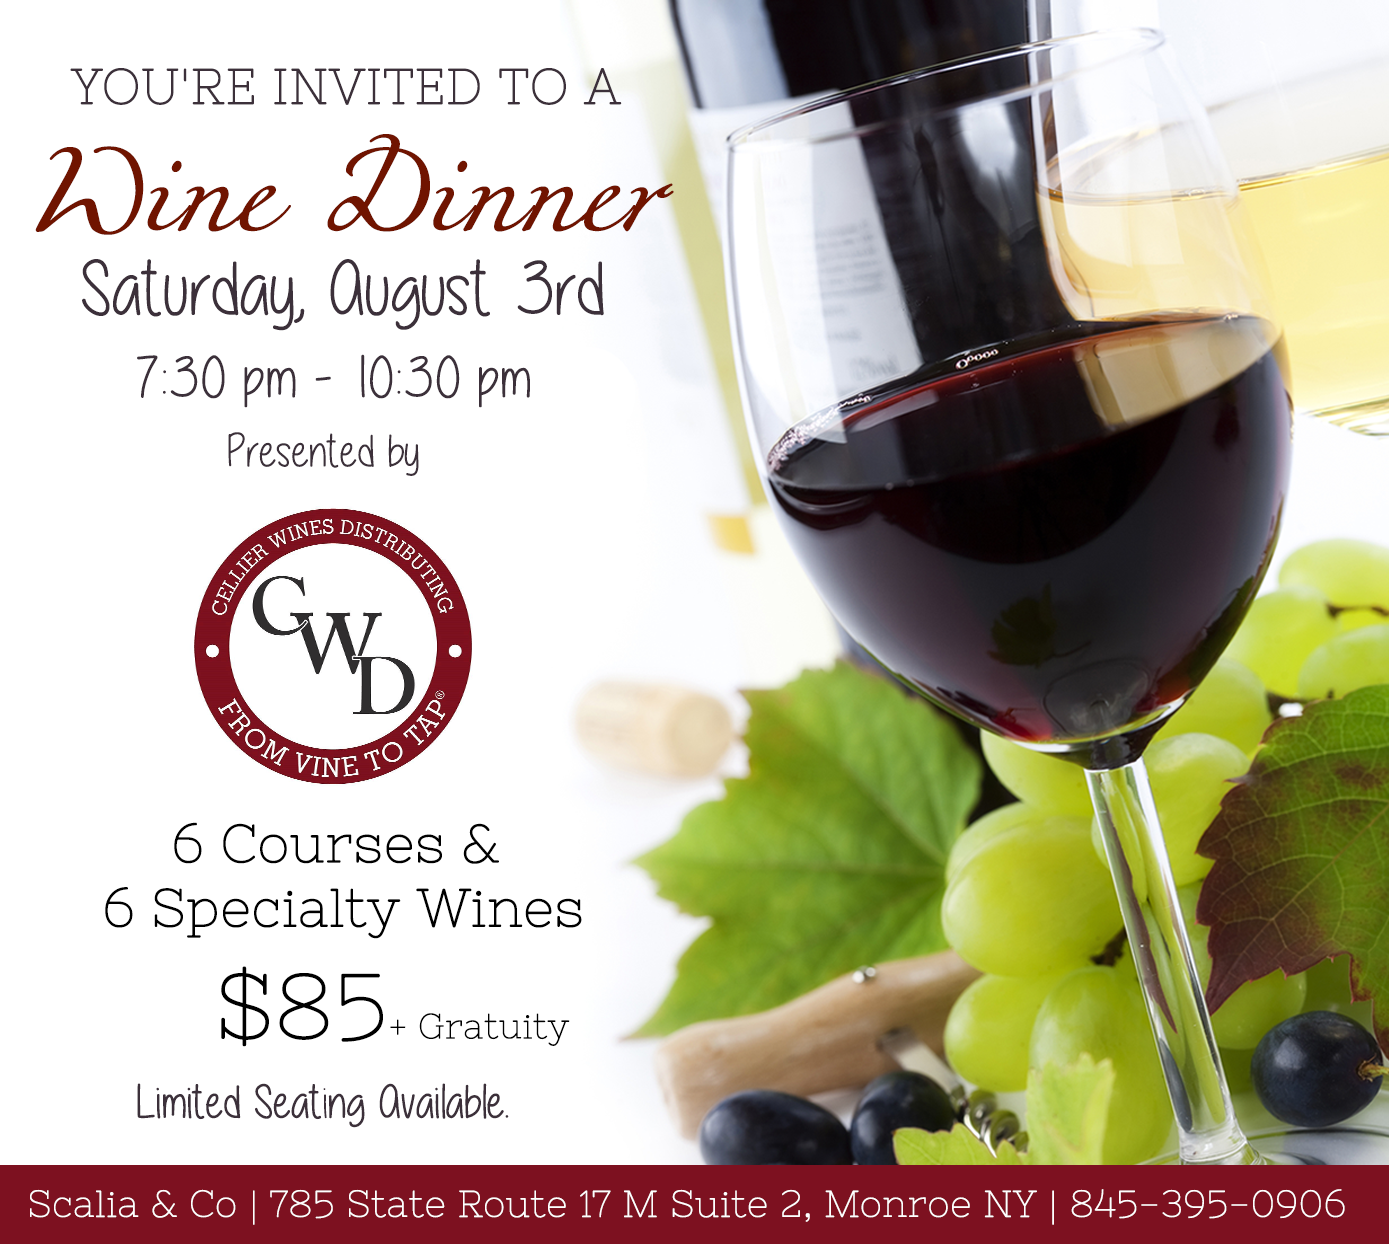 Wine Dinner - Saturday August 3rd - 7:30 pm - 10:30 pm. presented by CWD . 6 Courses and 6 specialty wines. $85 plus gratuity. Limited seating.